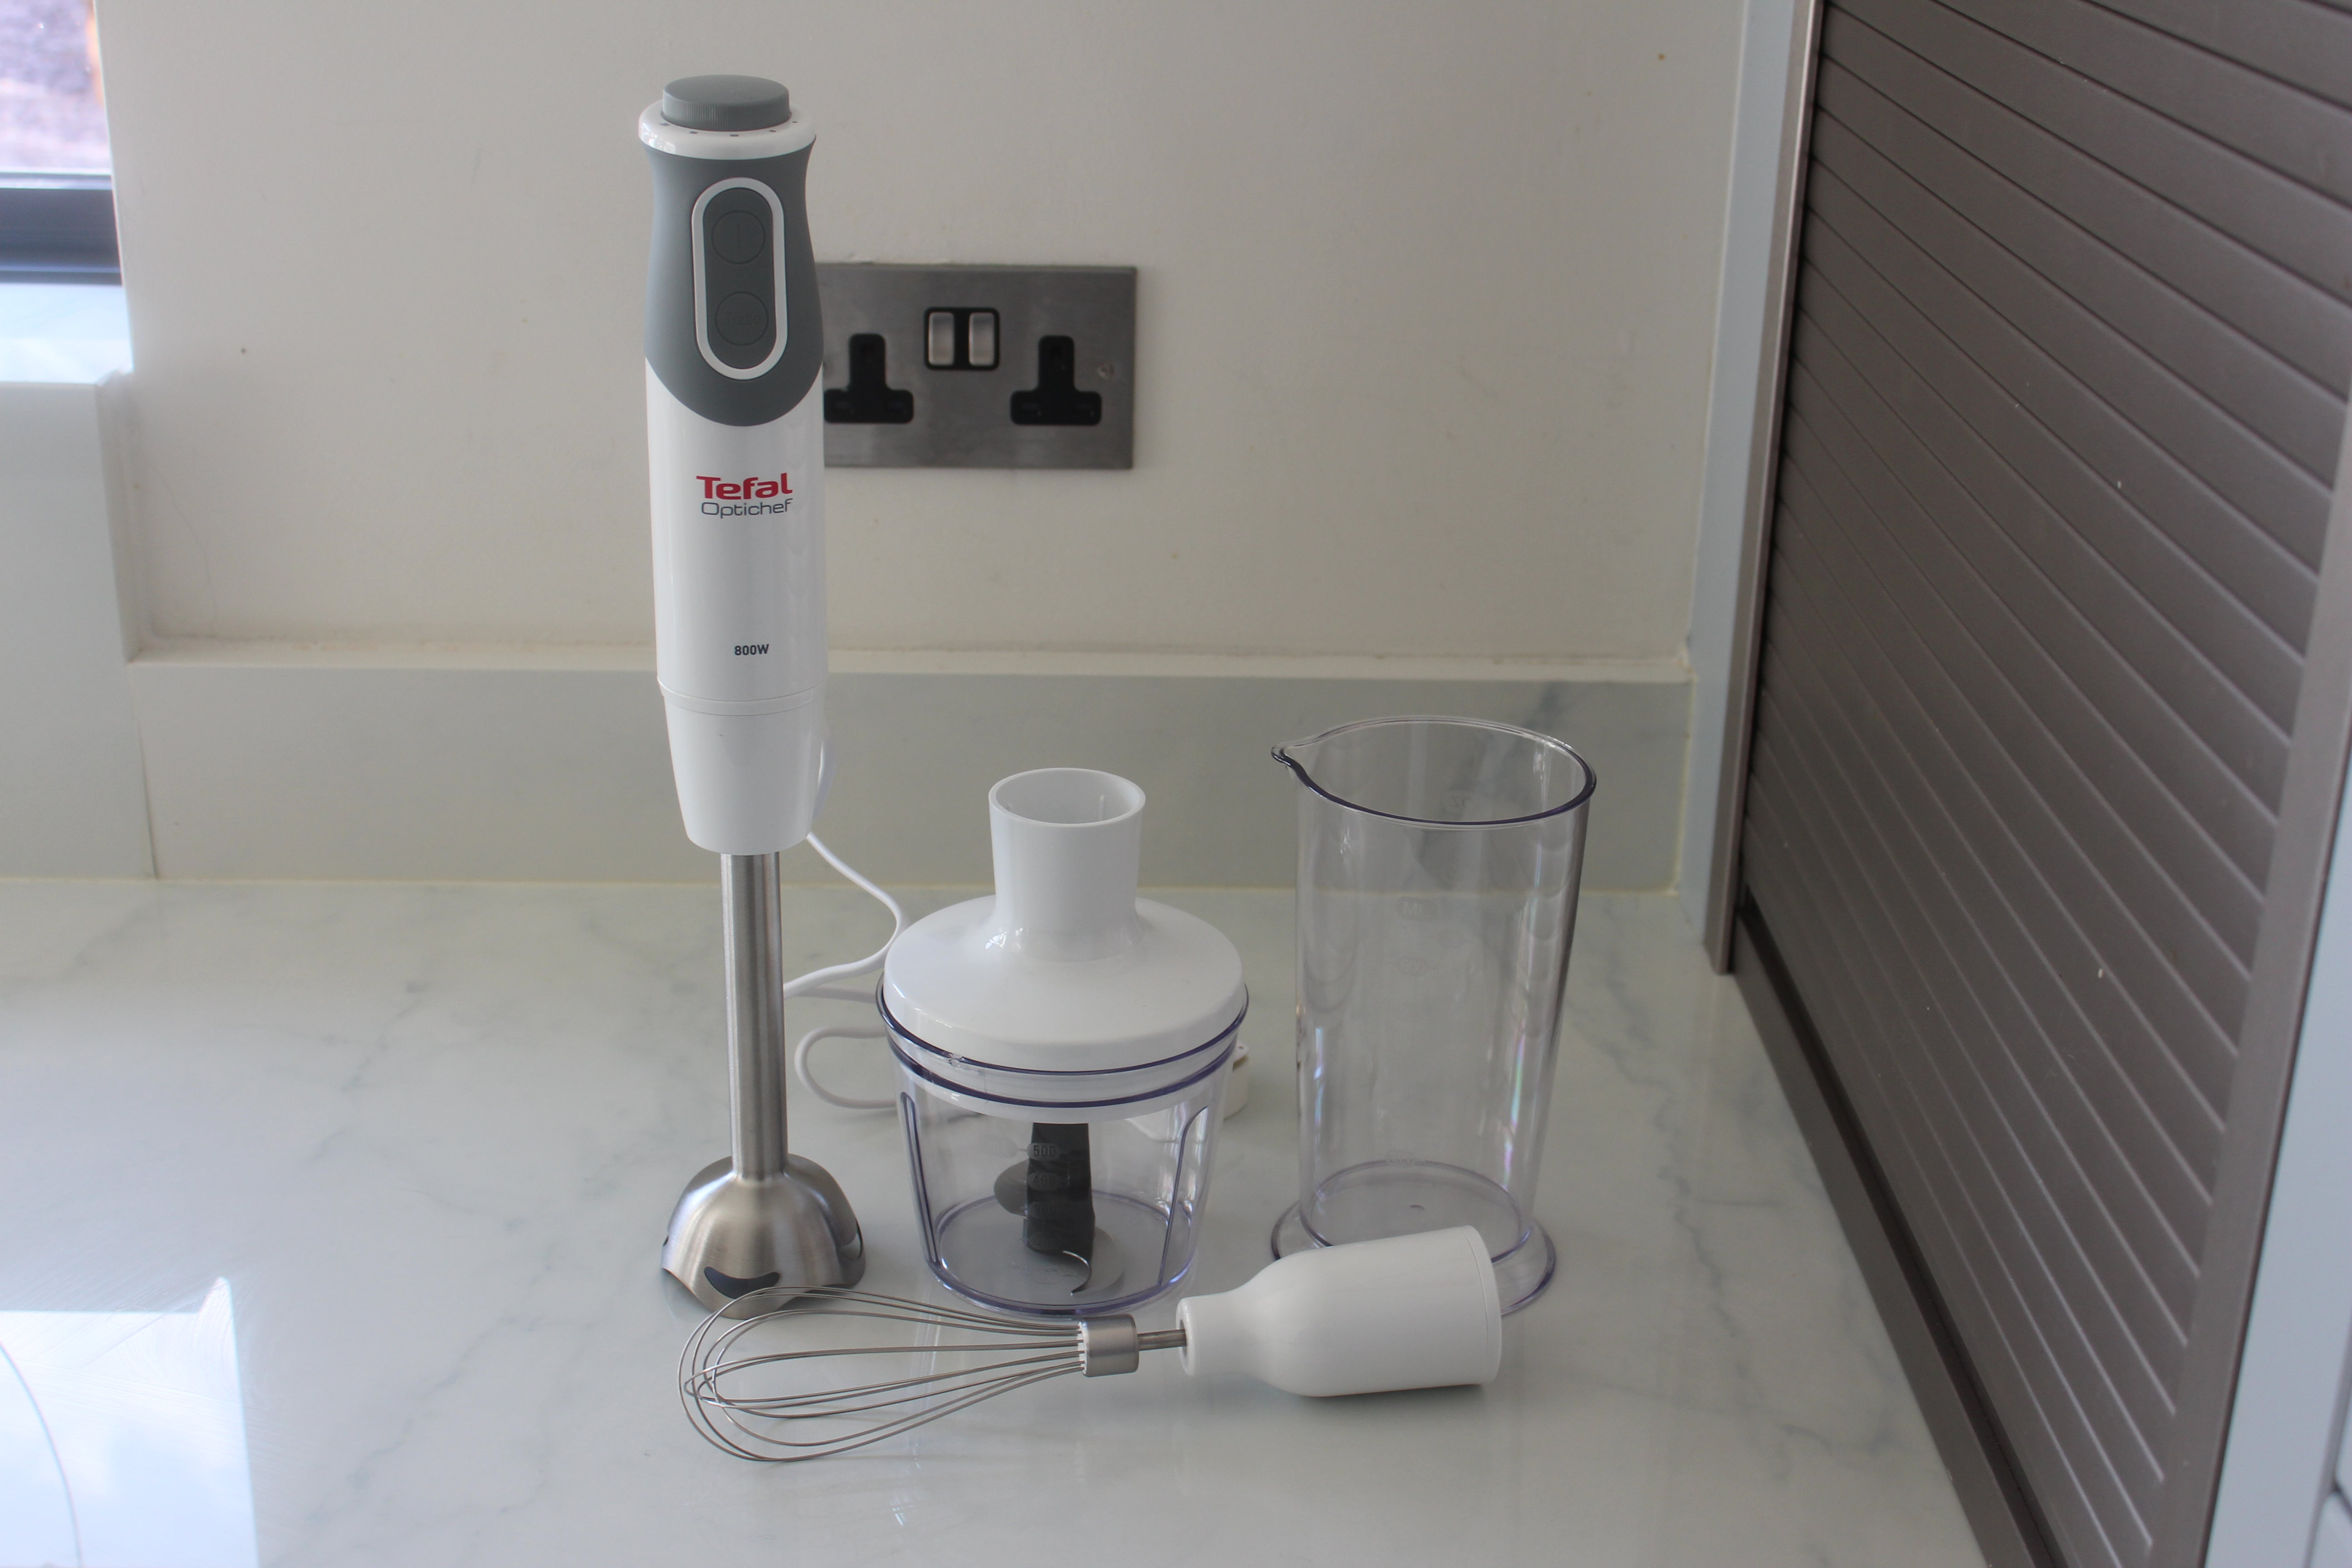 Tefal HB643140 Optichef hand blender Review | Trusted Reviews